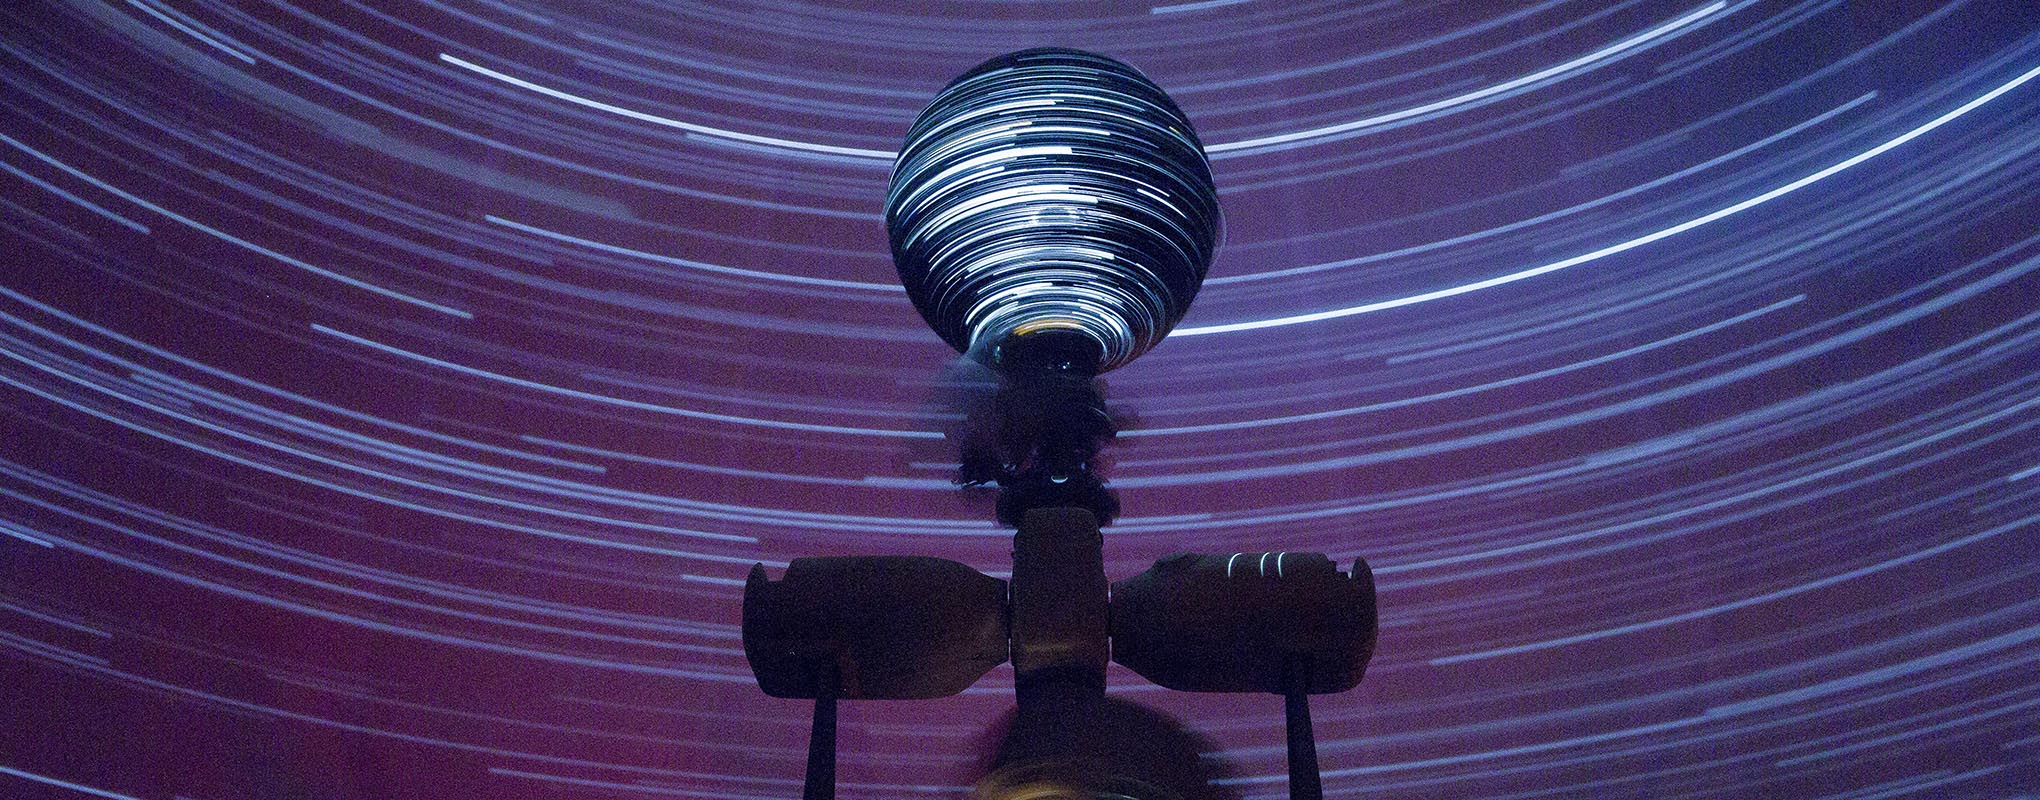 planetarium with swoosh of stars